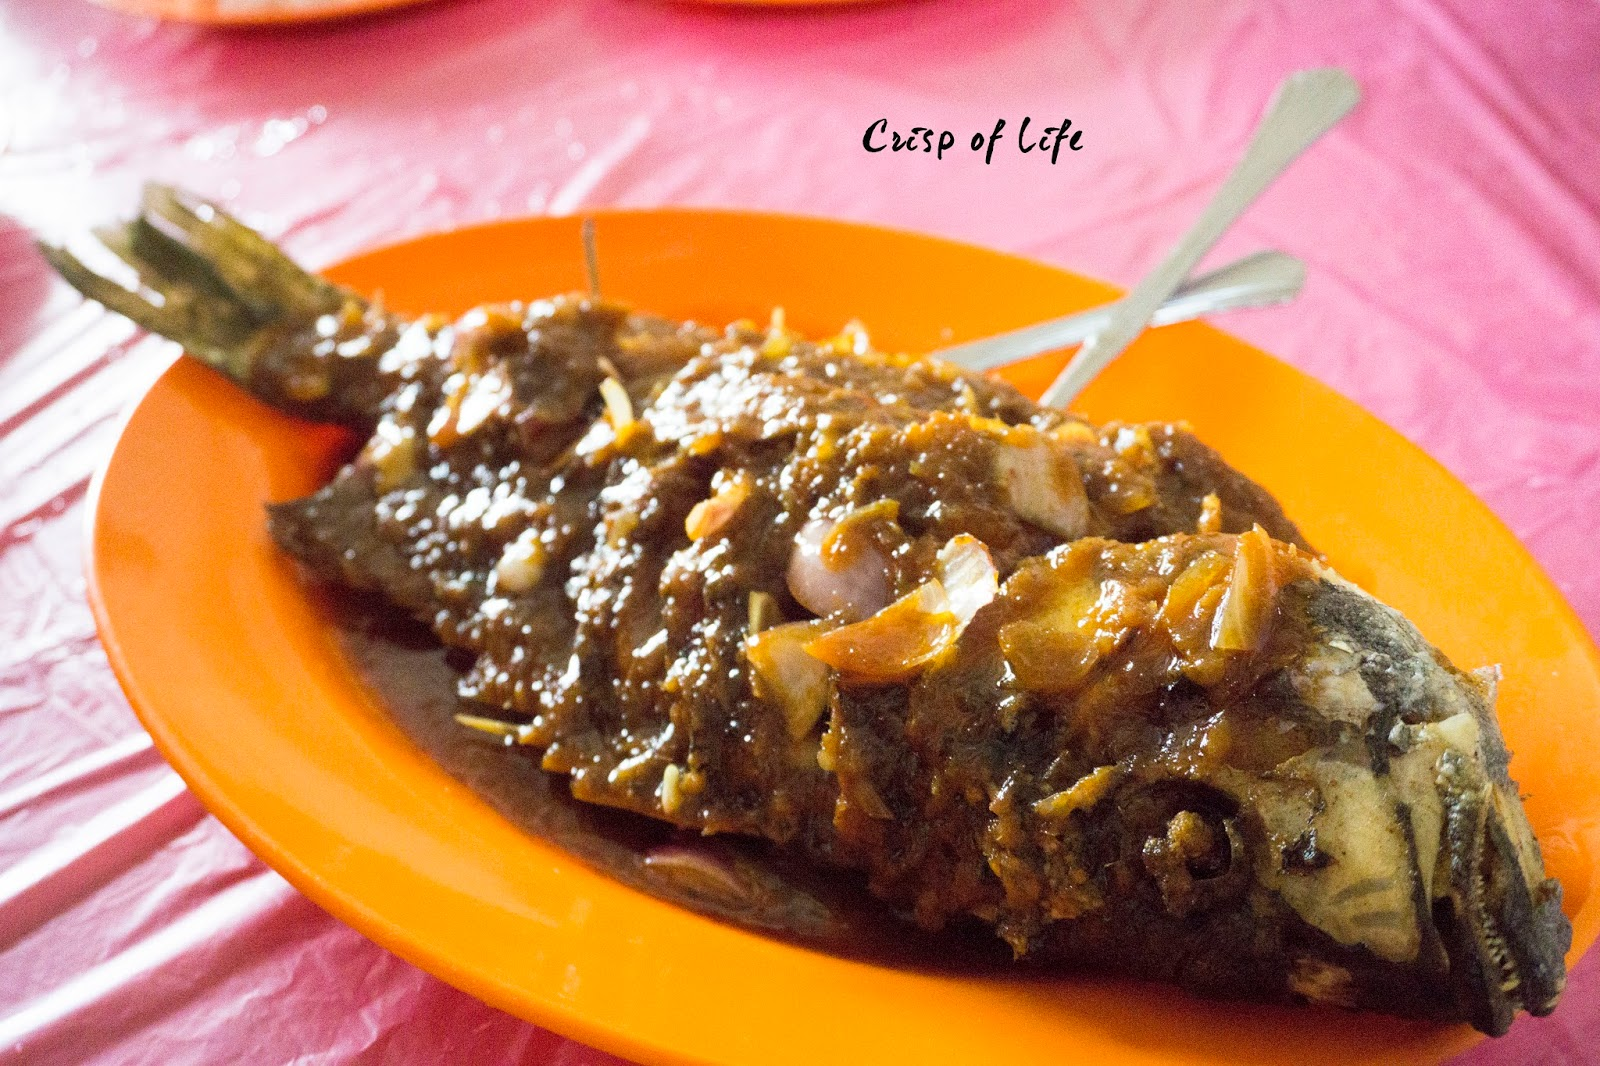 Lim Aik Chew Curry Prawn @ Nibong Tebal, Penang